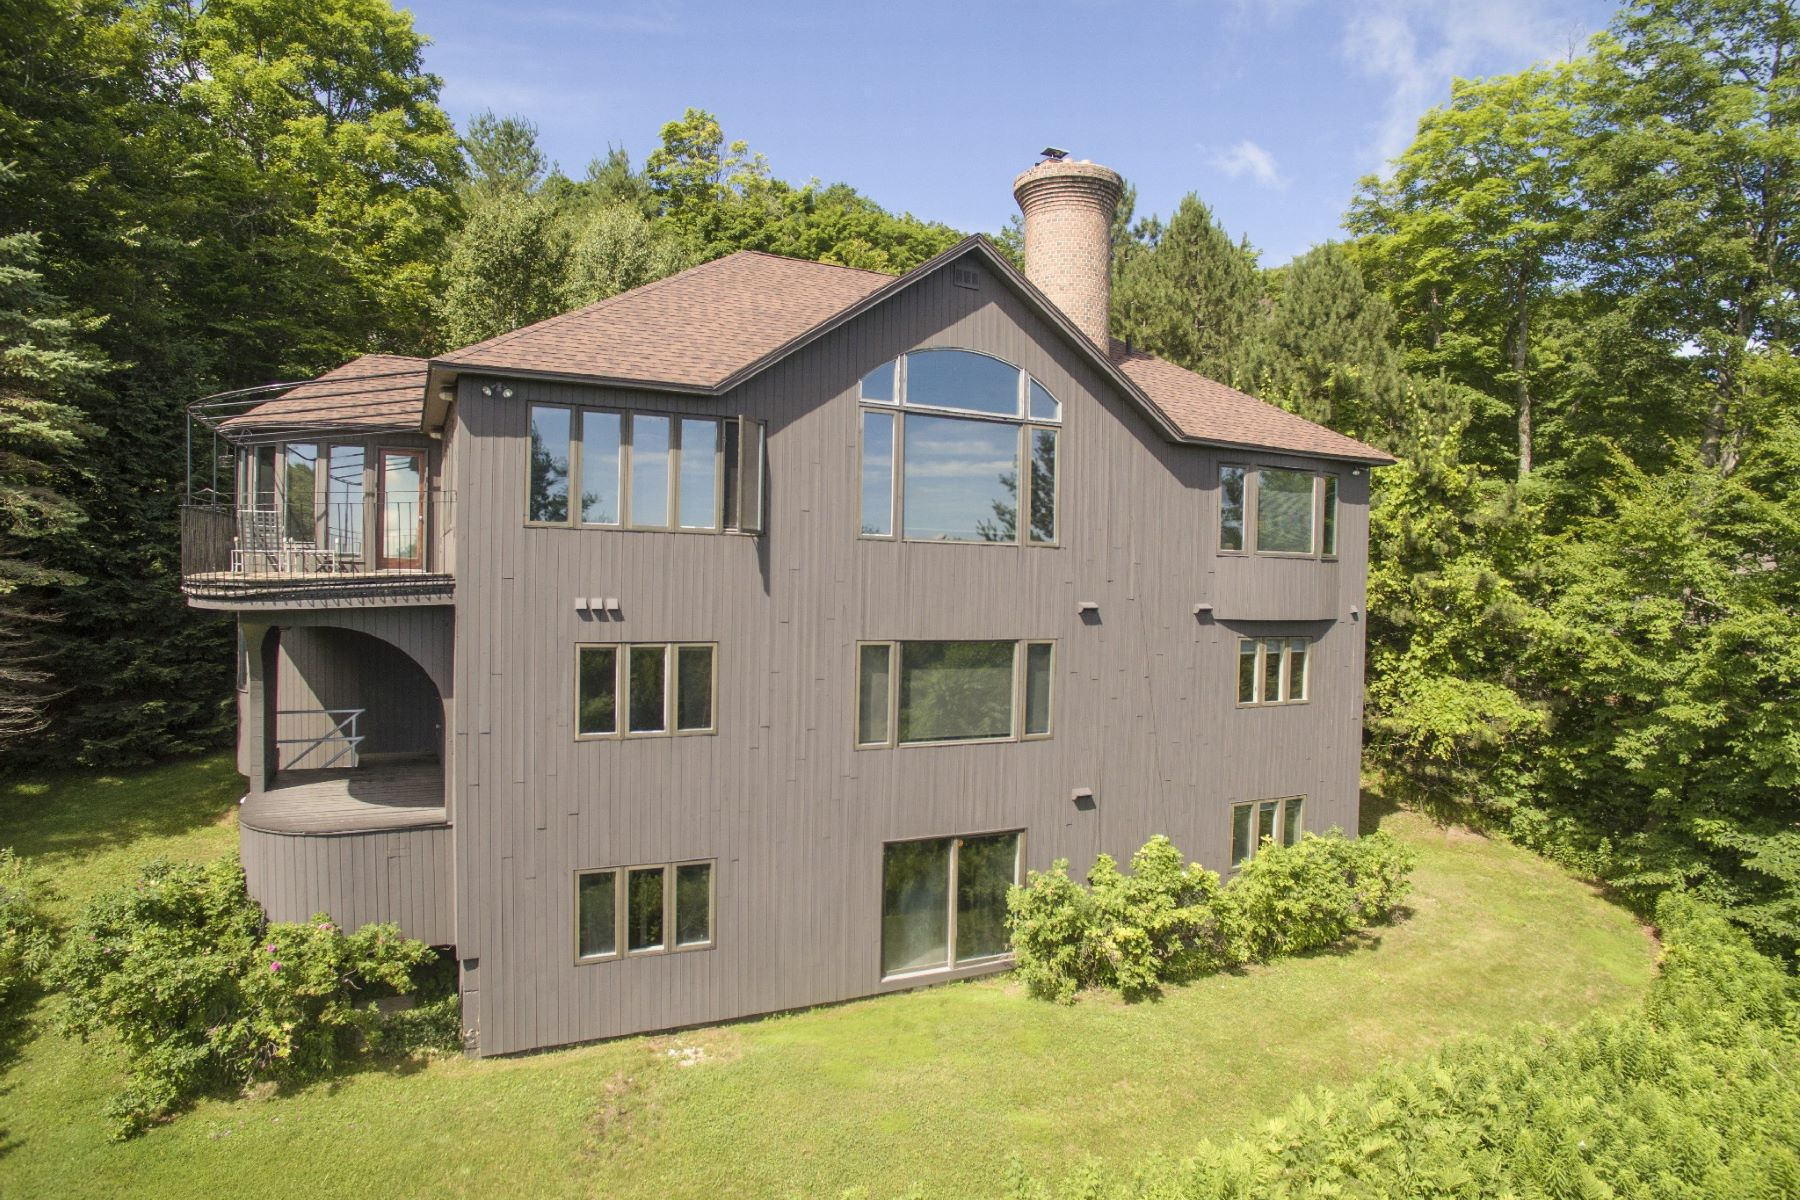 Single Family Home for Sale at 32 Windtree Road Rd, Winhall Winhall, Vermont, 05340 United States